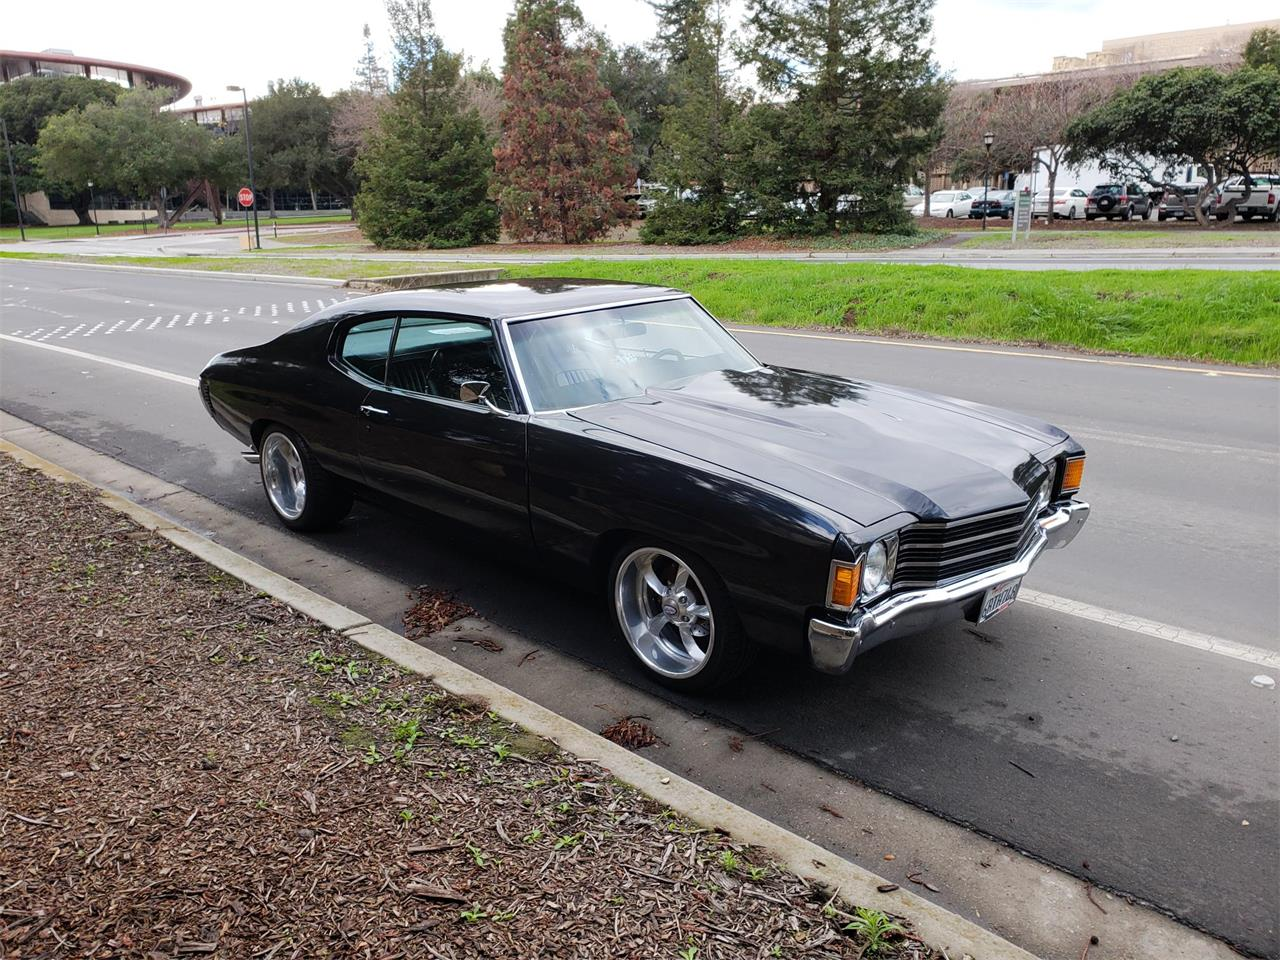 Large Picture of Classic '72 Chevelle Malibu located in Redwood City California - $25,000.00 Offered by a Private Seller - PP62